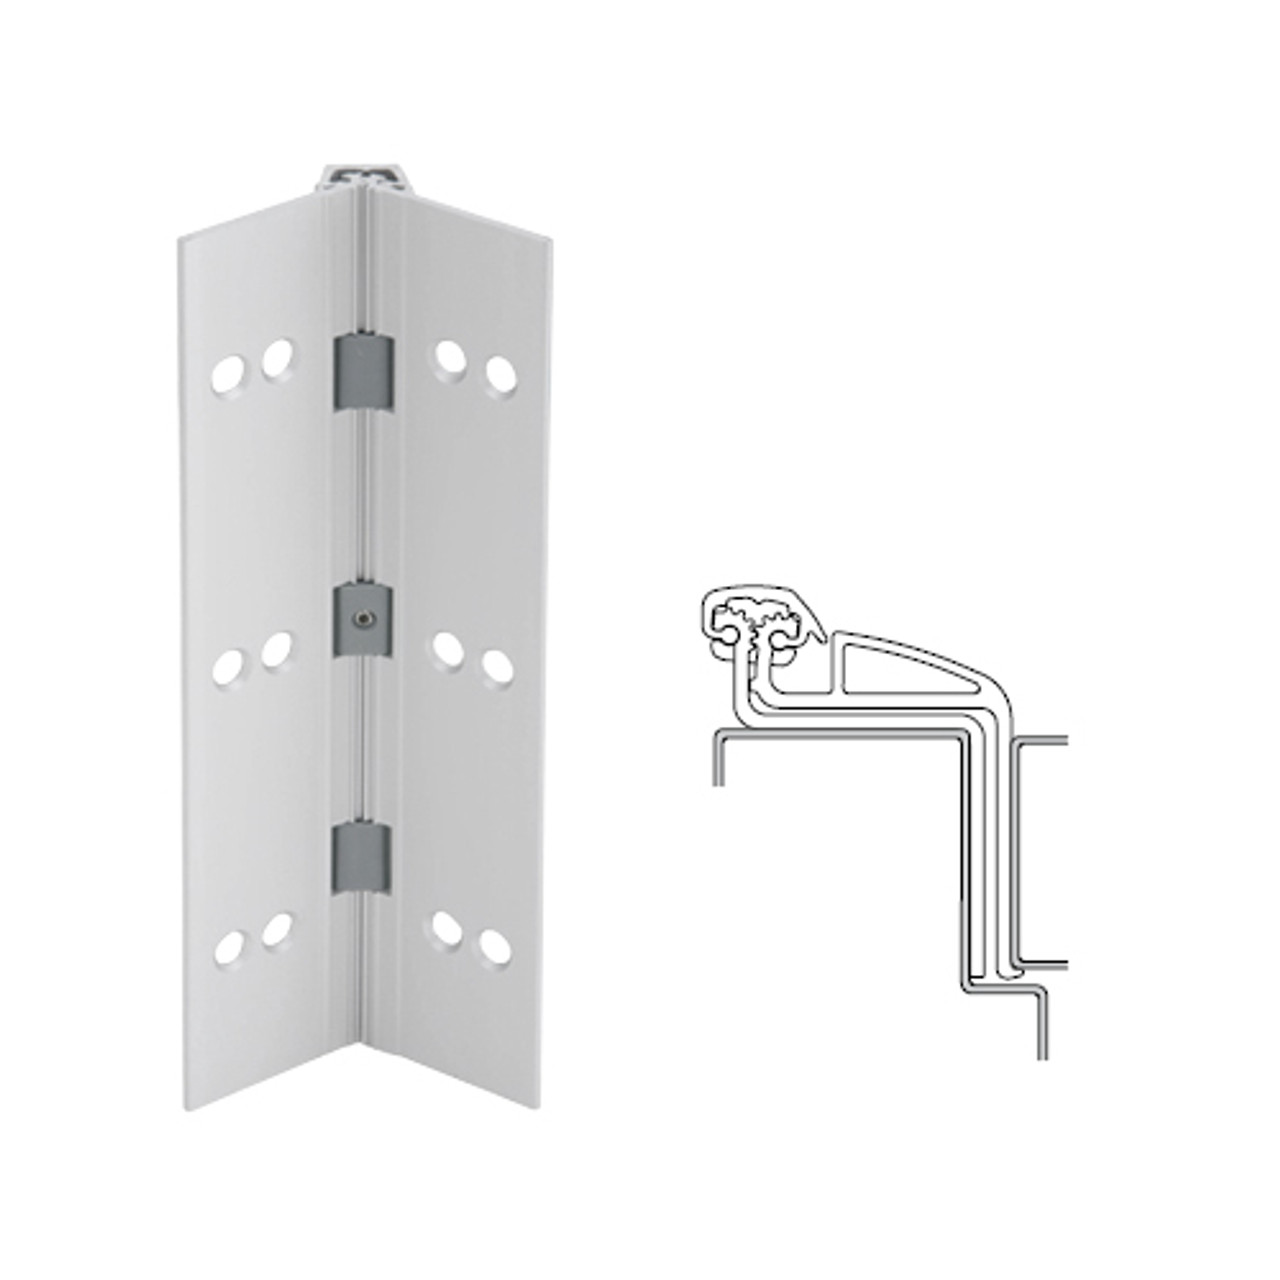 041XY-US28-120-TF IVES Full Mortise Continuous Geared Hinges with Thread Forming Screws in Satin Aluminum